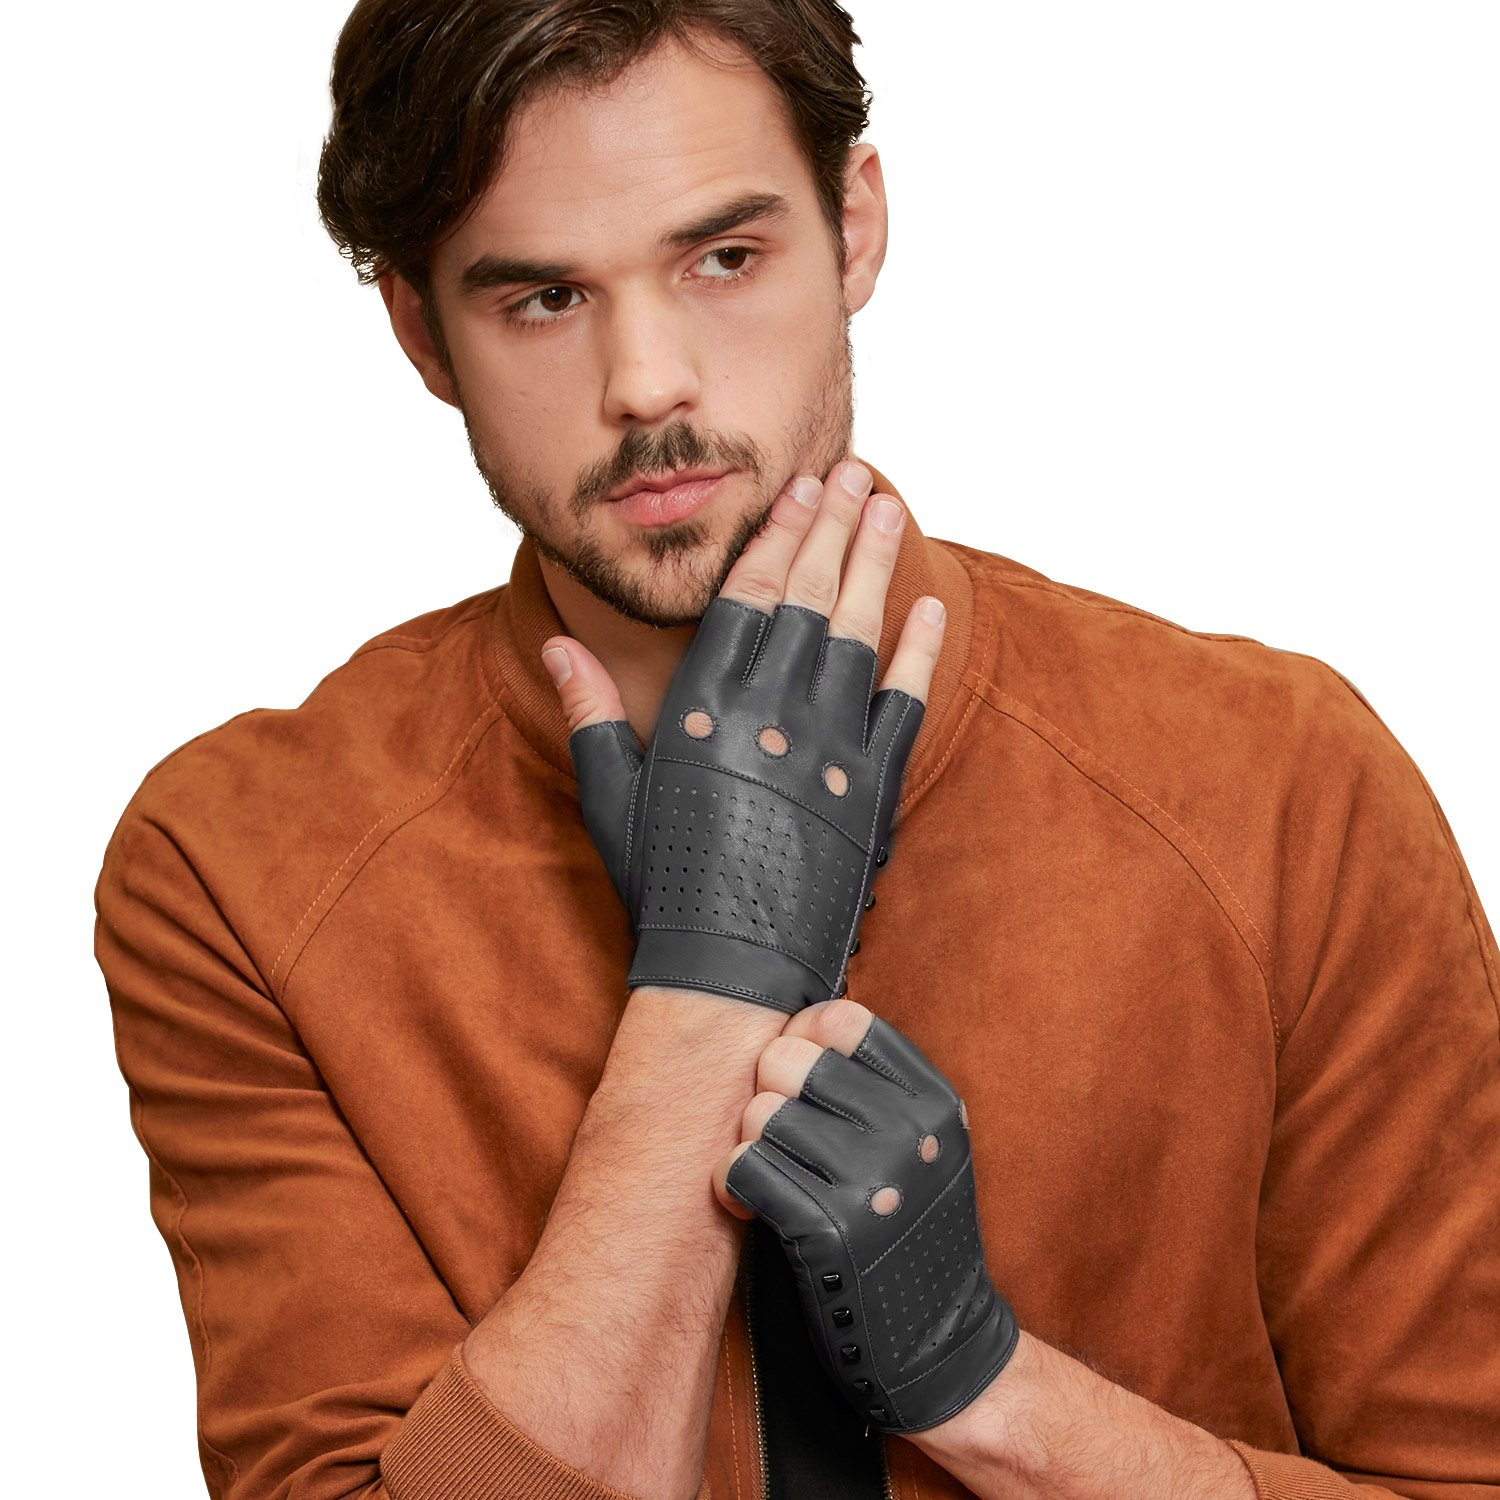 GSG Punk Studs Driving Cycling Leather Gloves Motorcycle Fingerless Gloves Mens Half Finger Hip Hop Gloves Grey 11